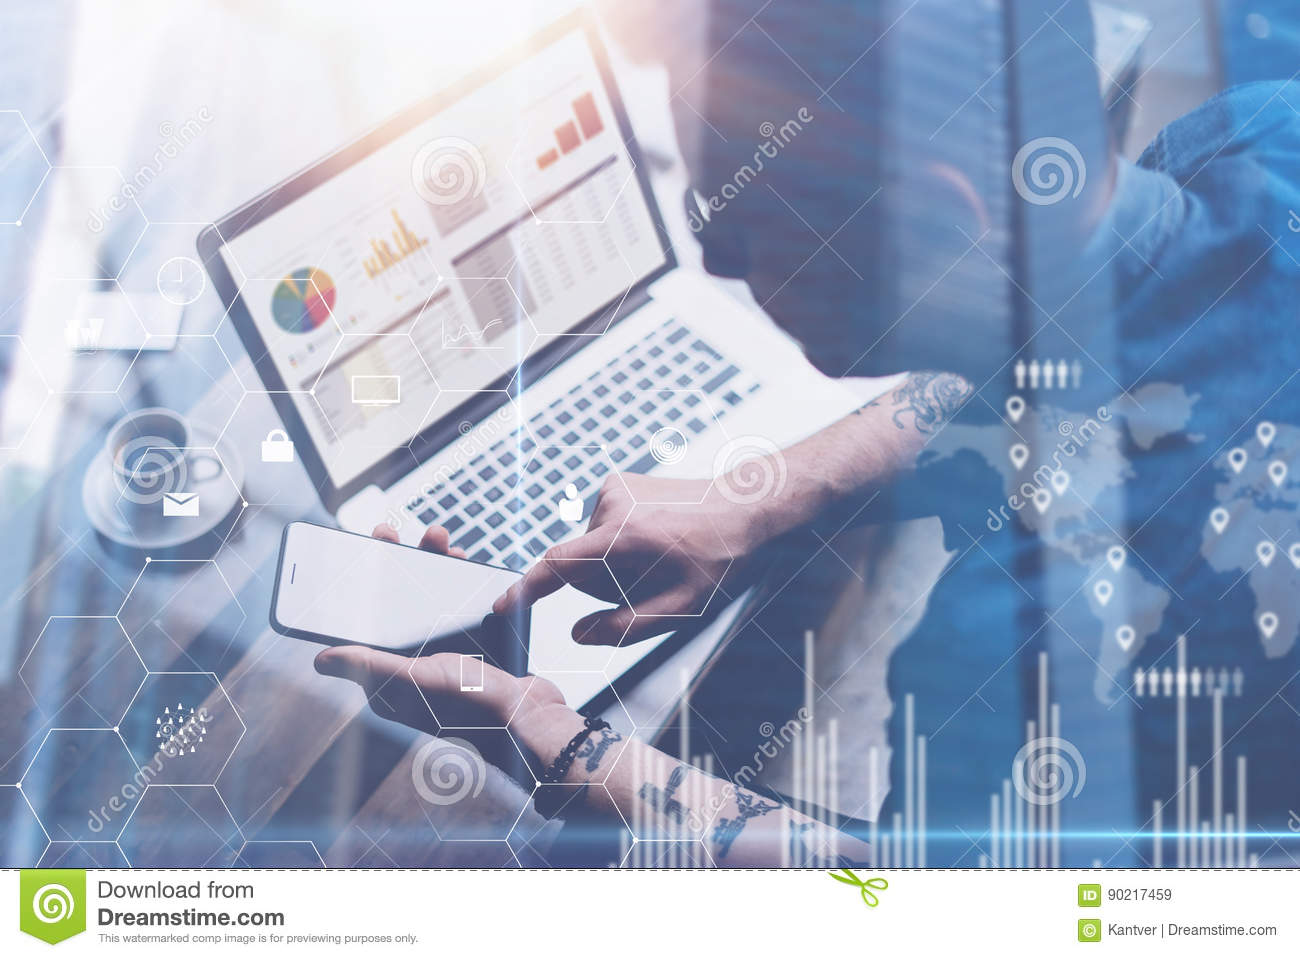 Businessman working at office on laptop.Man holding smartphone in hands.Concept of digital screen,virtual connection